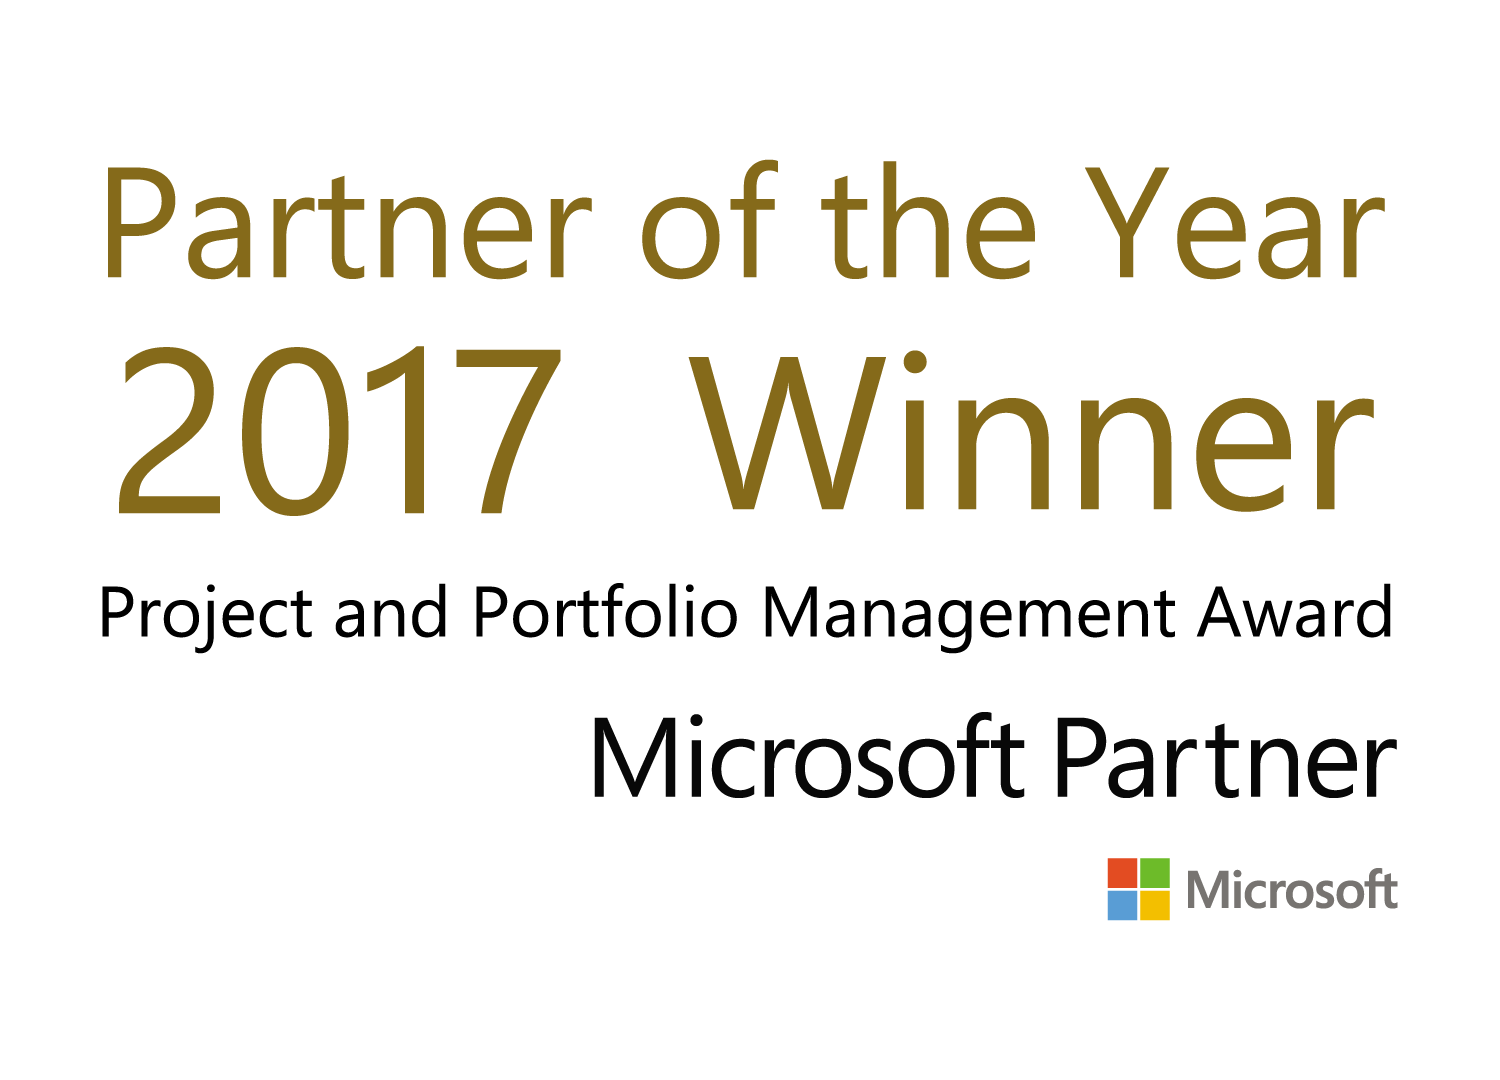 Microsoft Partner of the year Winner 2017